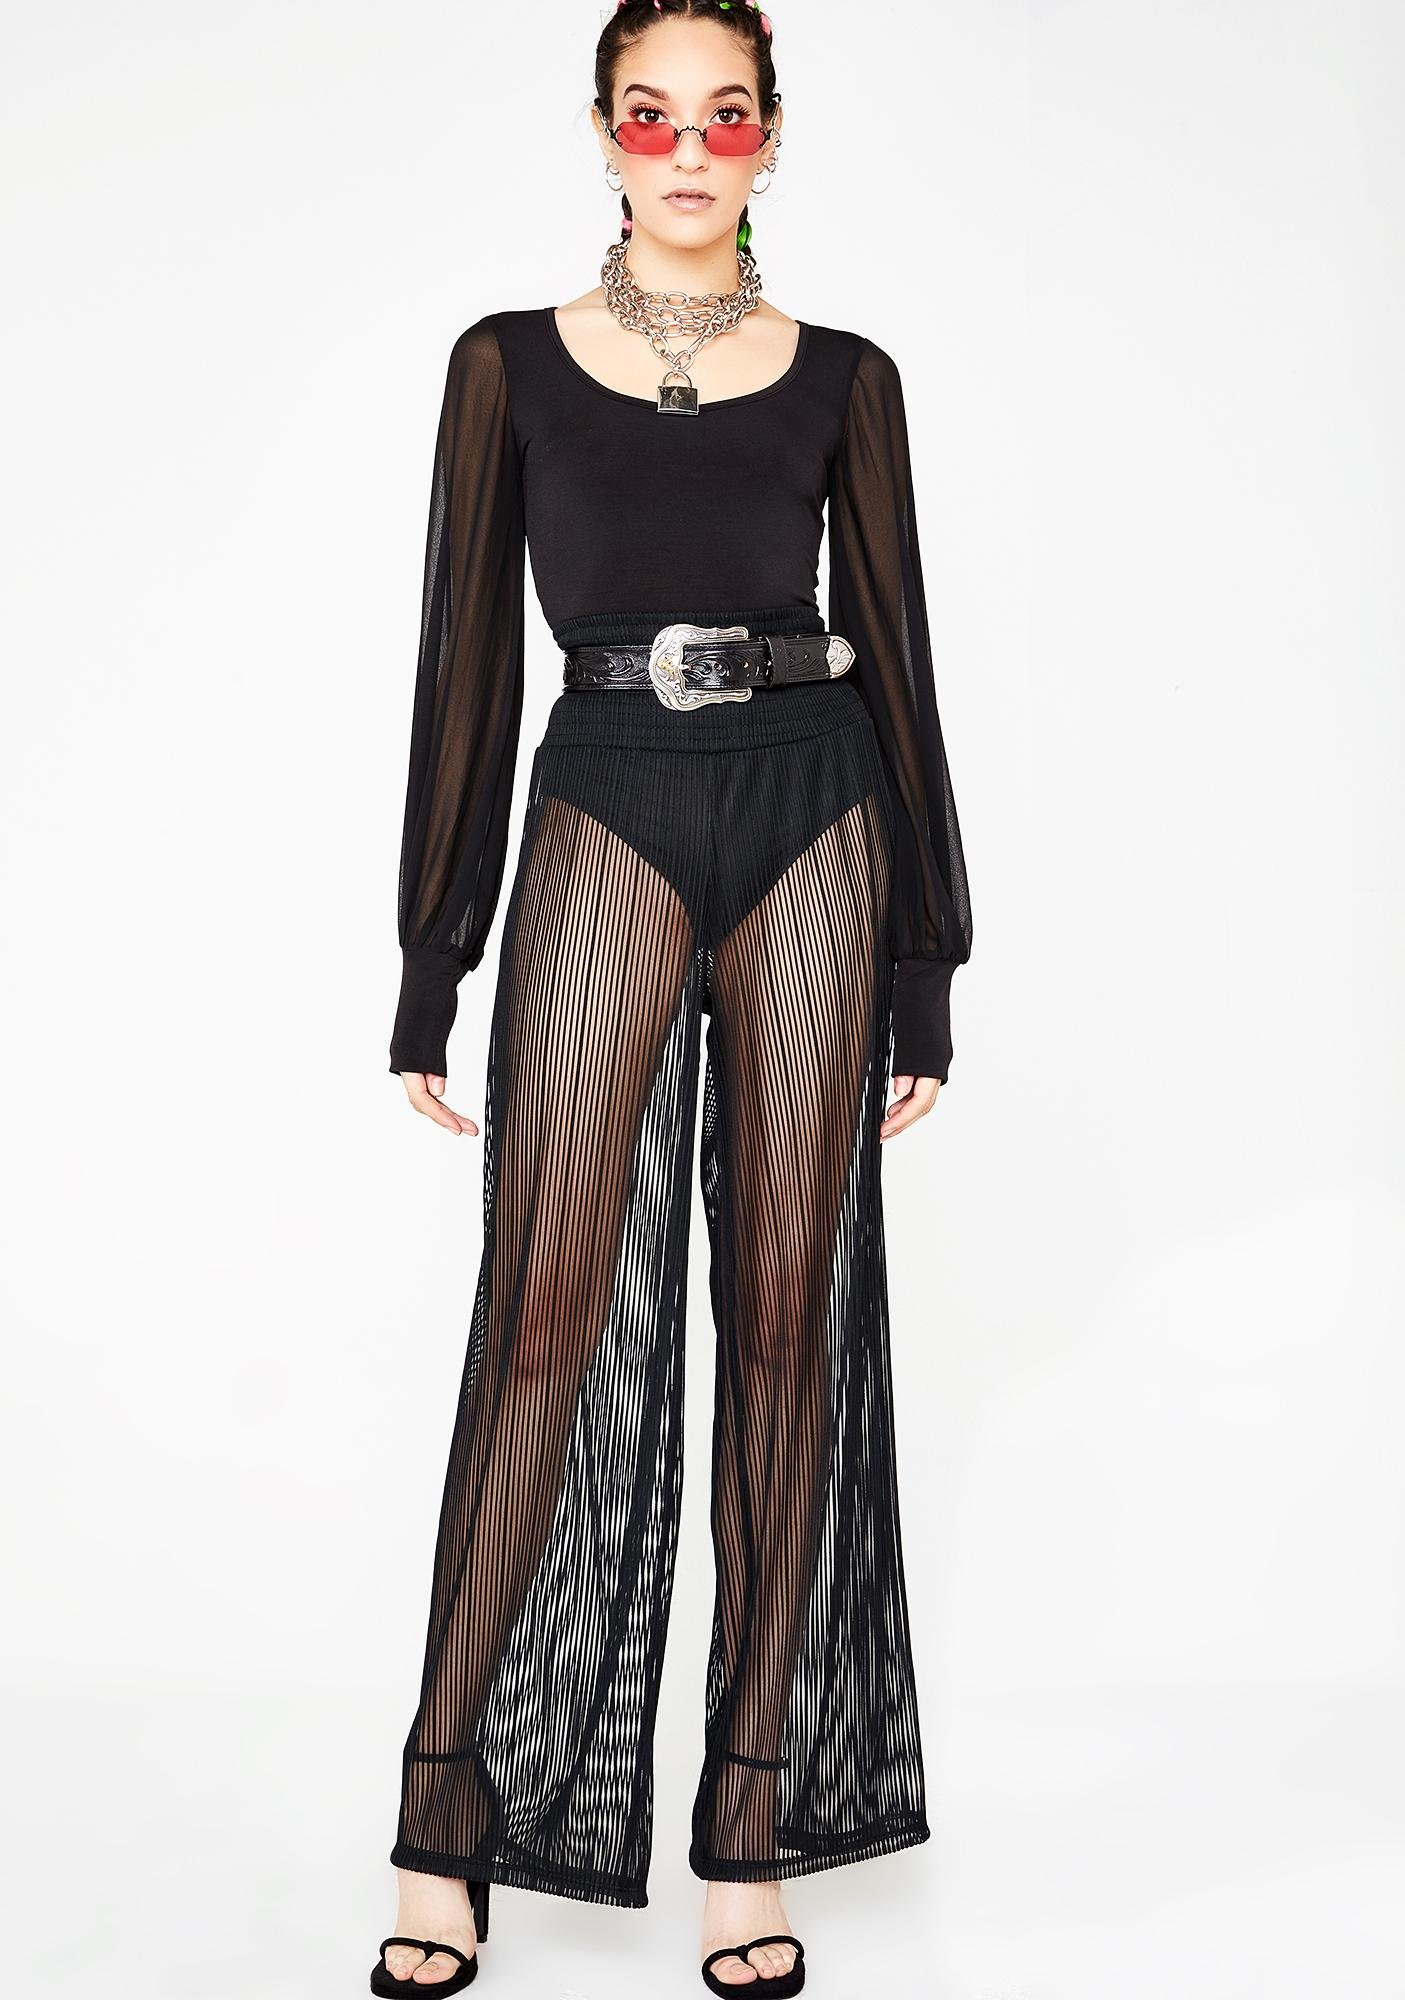 Kiki Riki Quick Flash Sheer Trousers